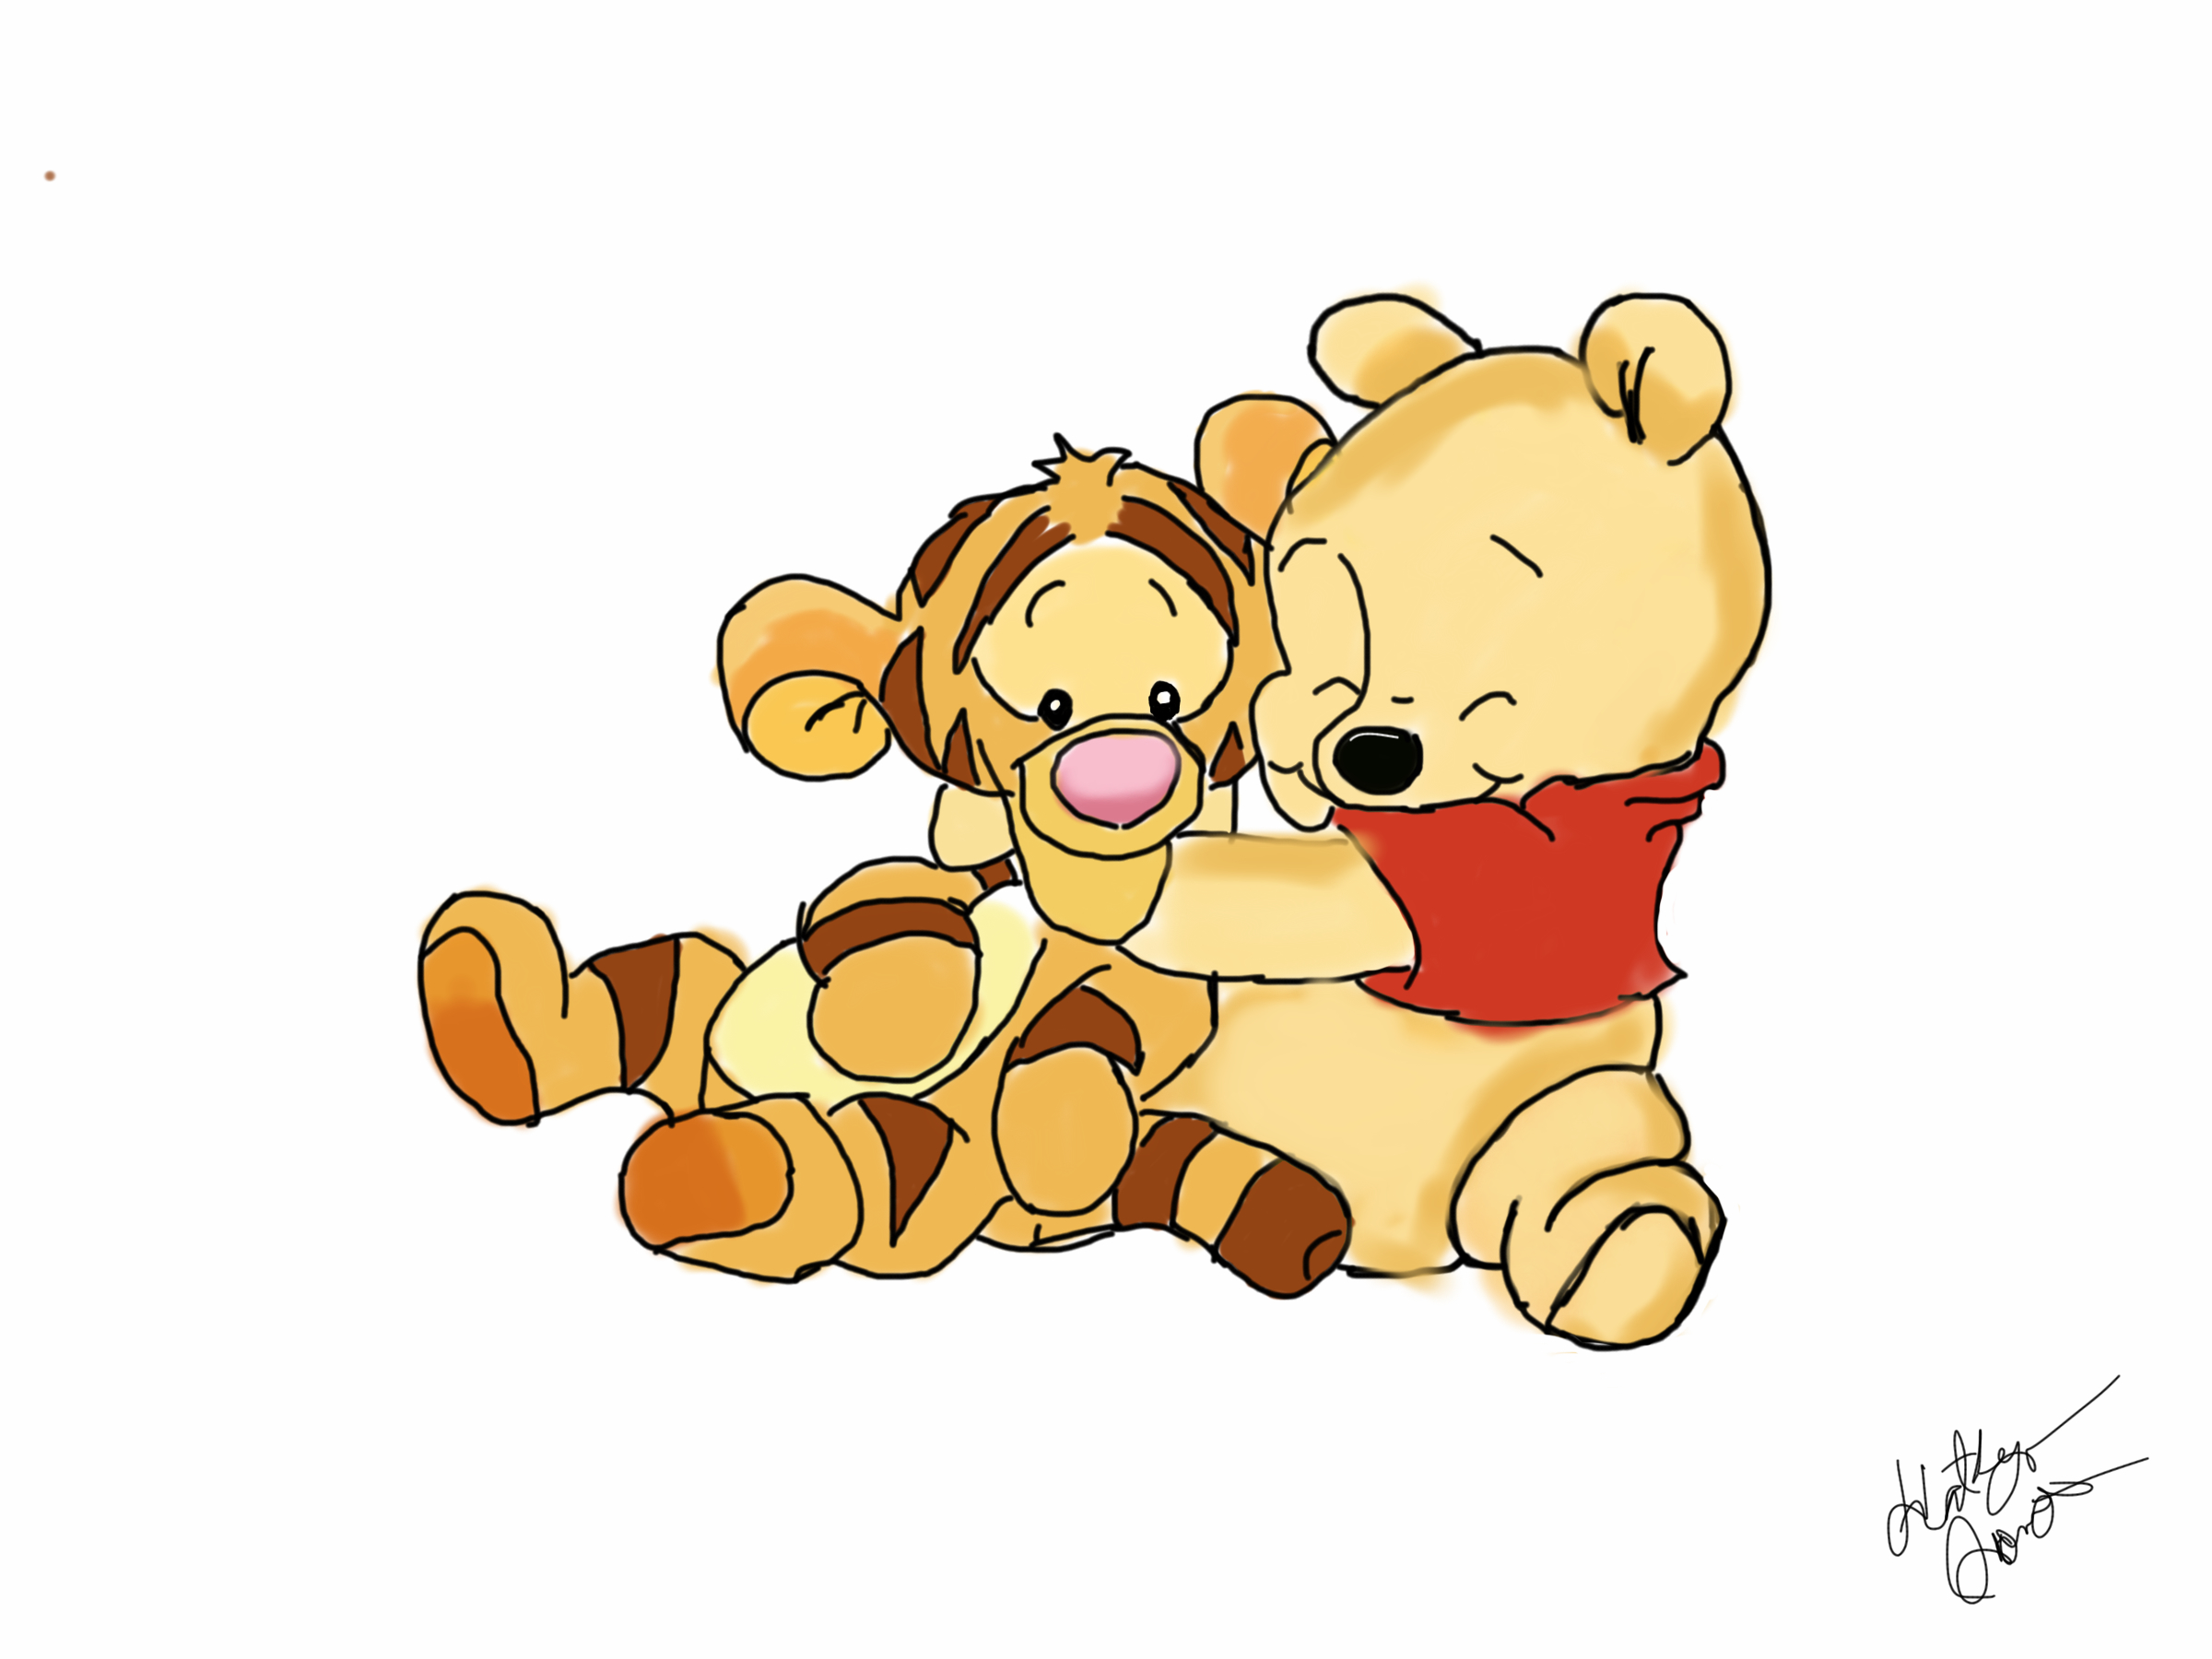 Baby pooh and tigger by DisneyLover23 on DeviantArt